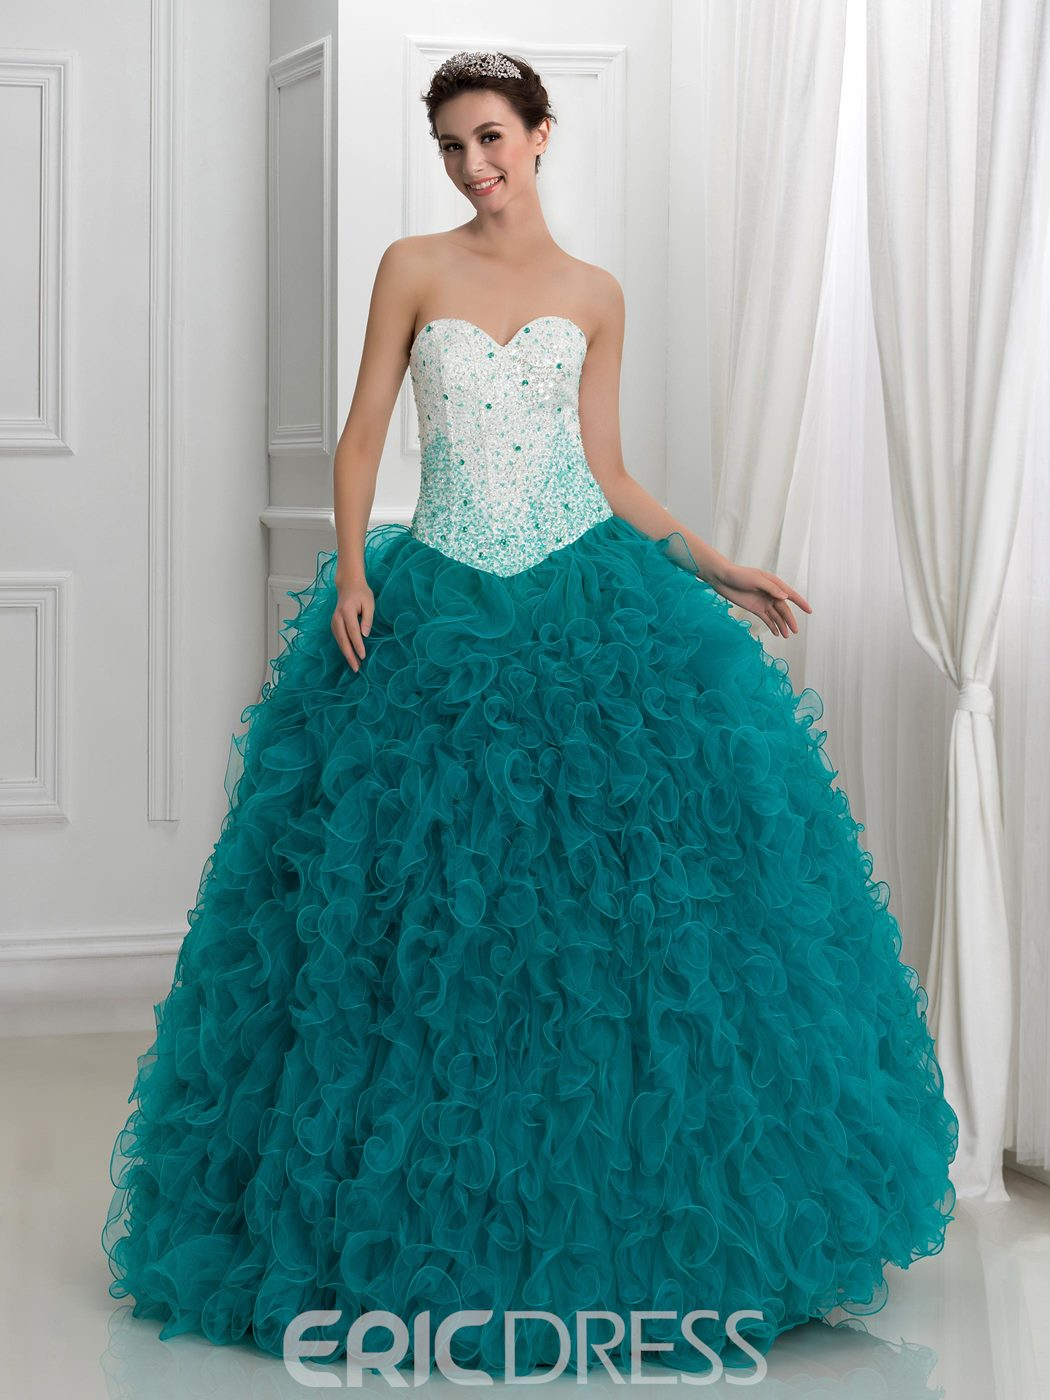 Ericdress Sweetheart Ruffles Beading Ball Gown Quinceanera Dress